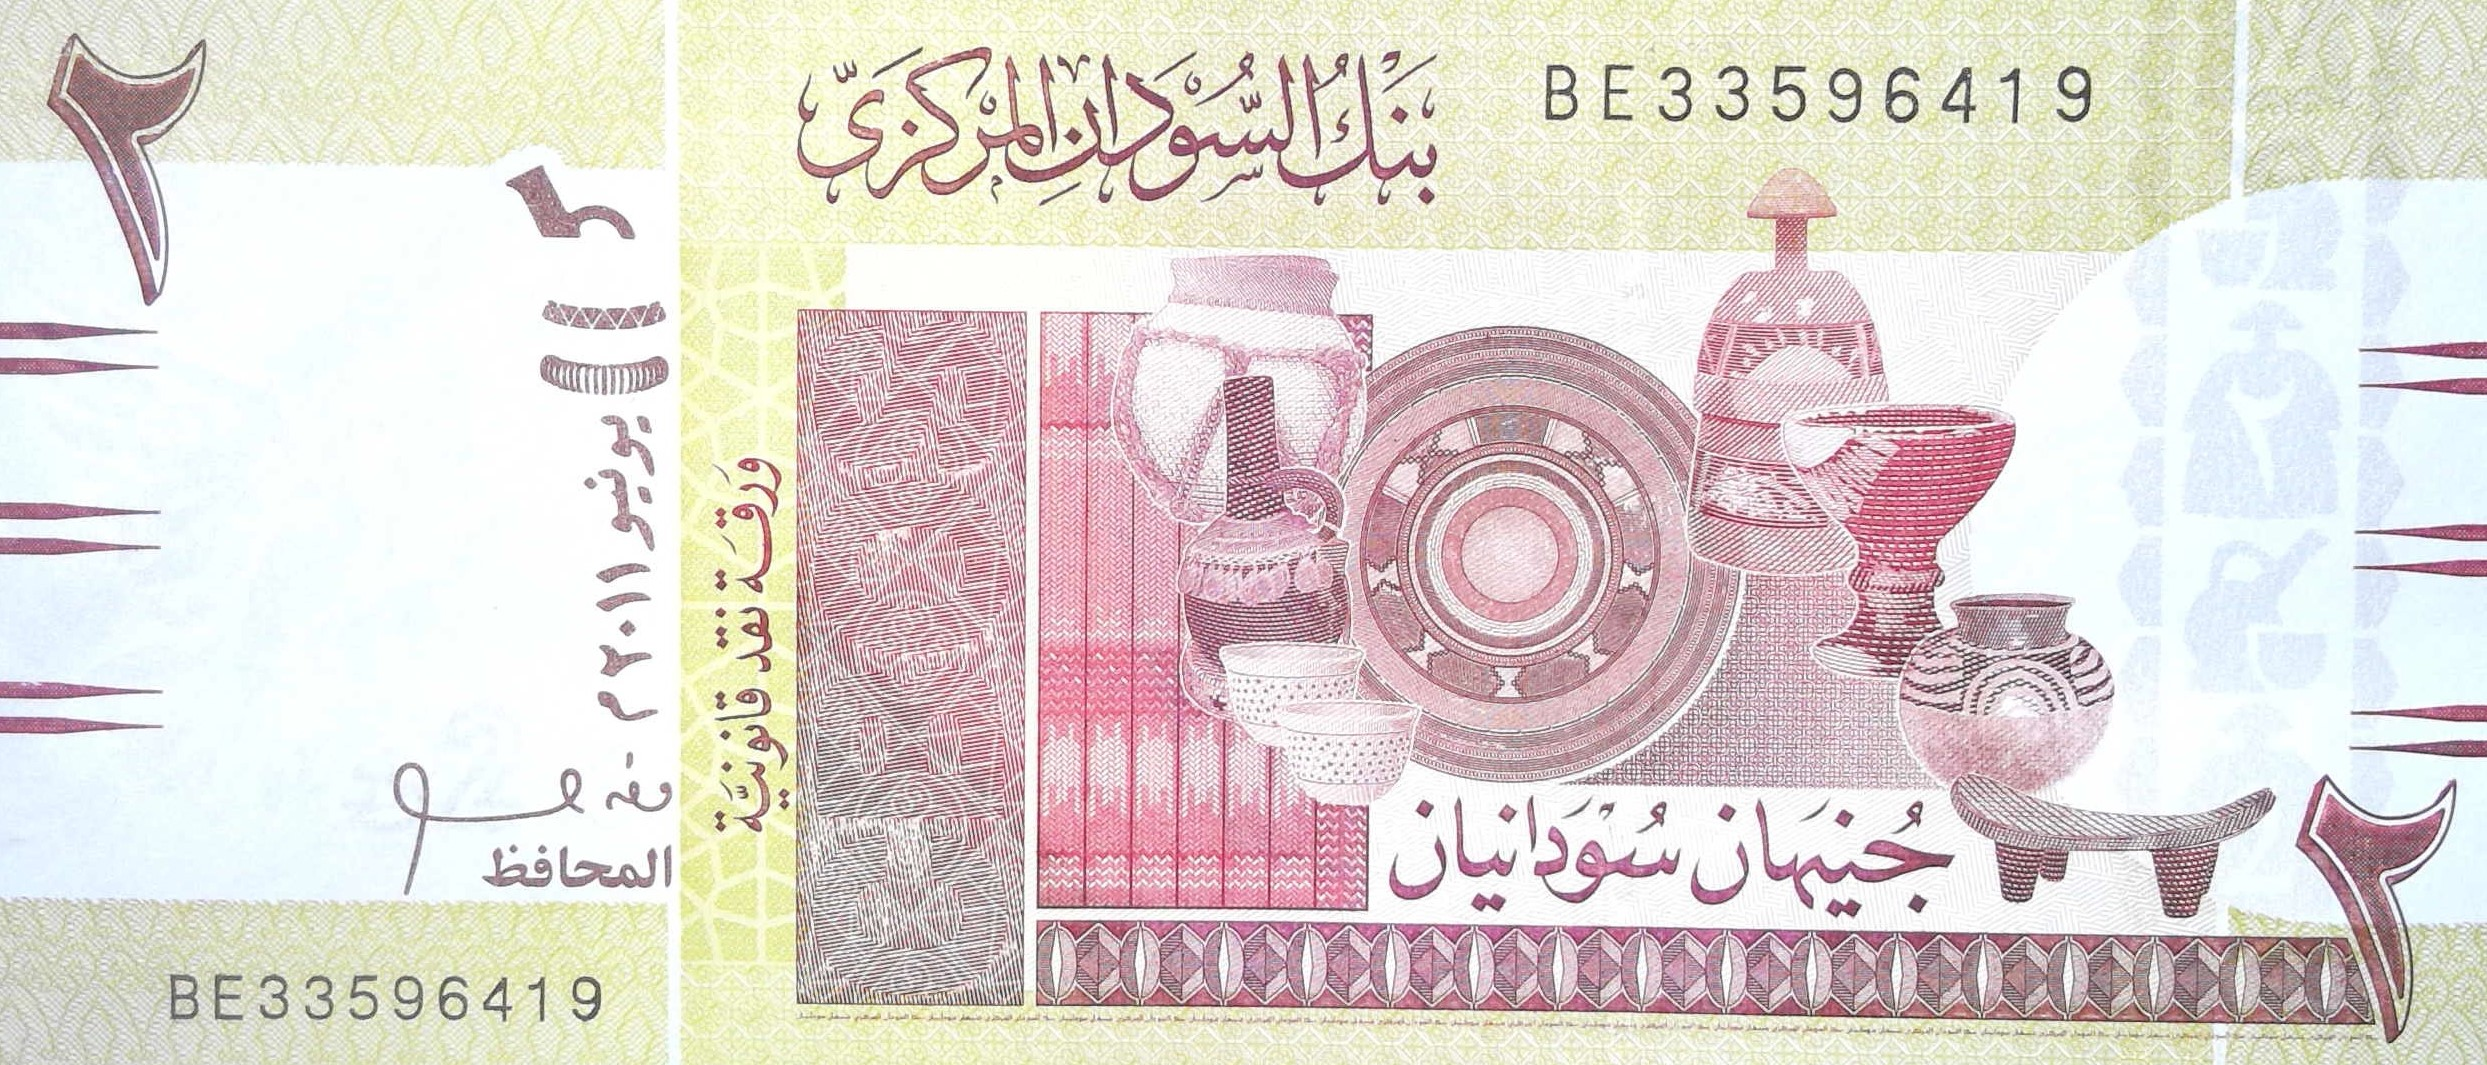 sudan 2 pound banknote year 2011 2 back featuring pottery